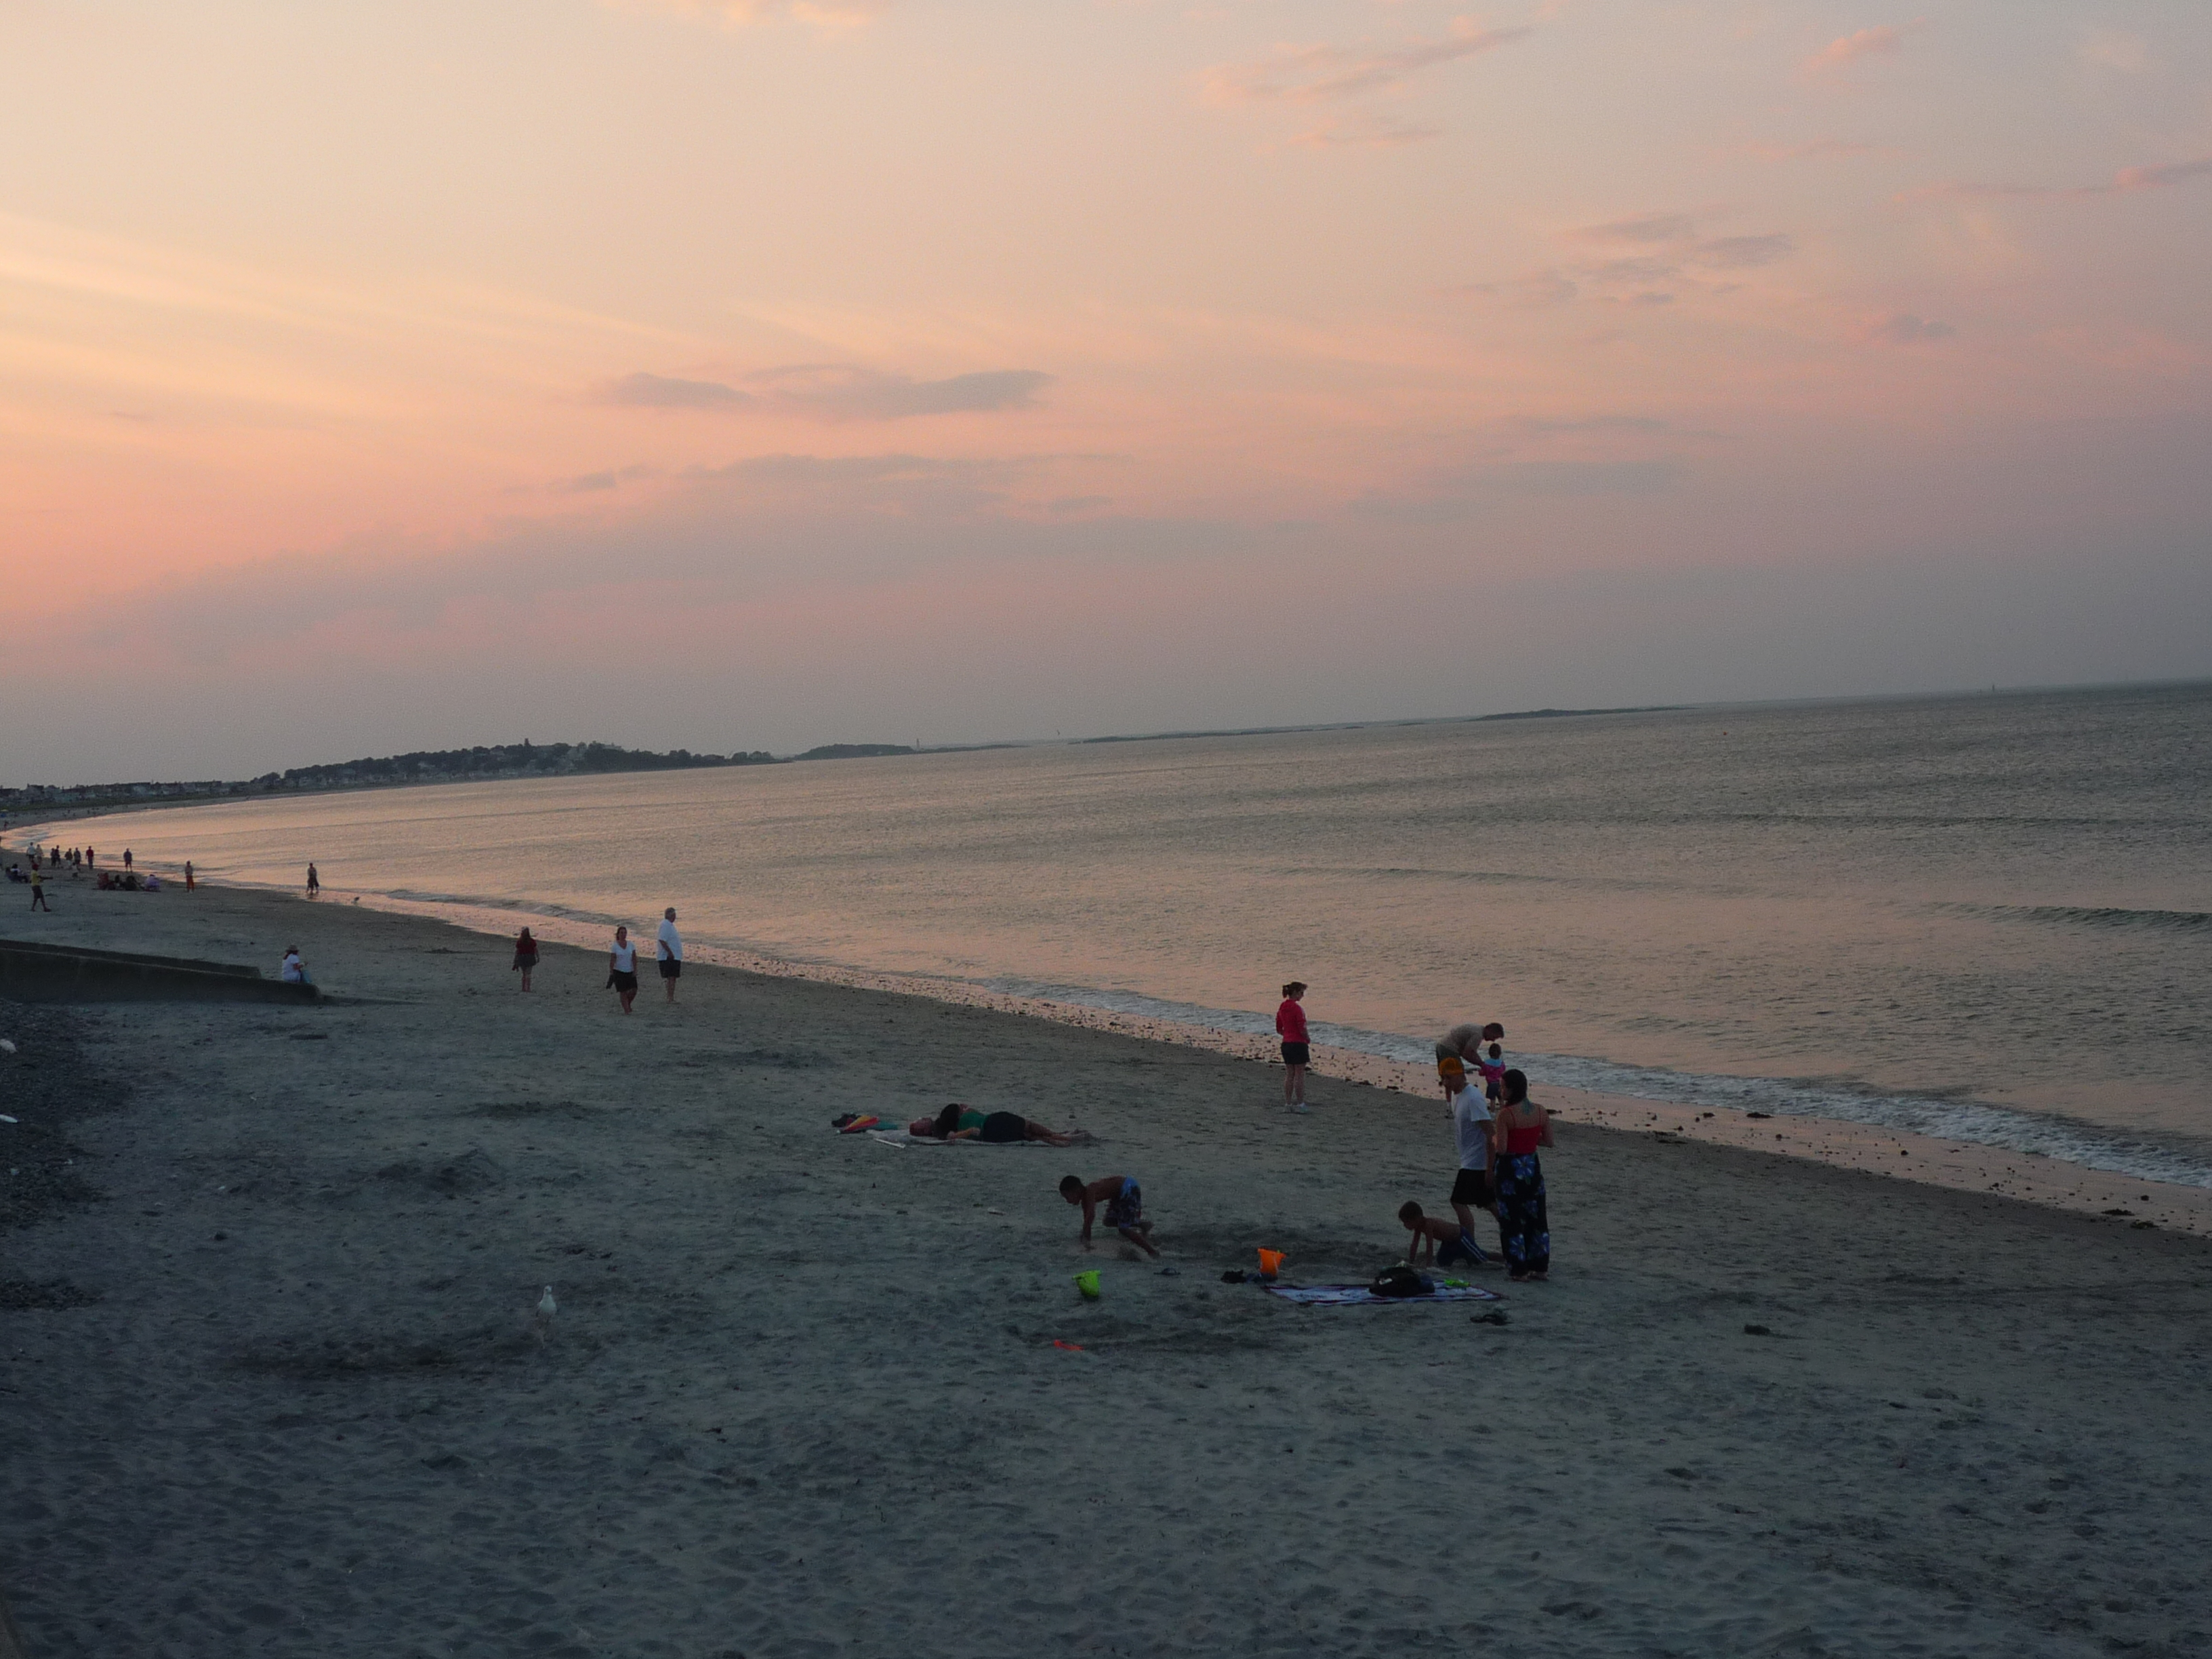 Nantasket Beach in Hull, Mass., Open Year-Round Near Boston